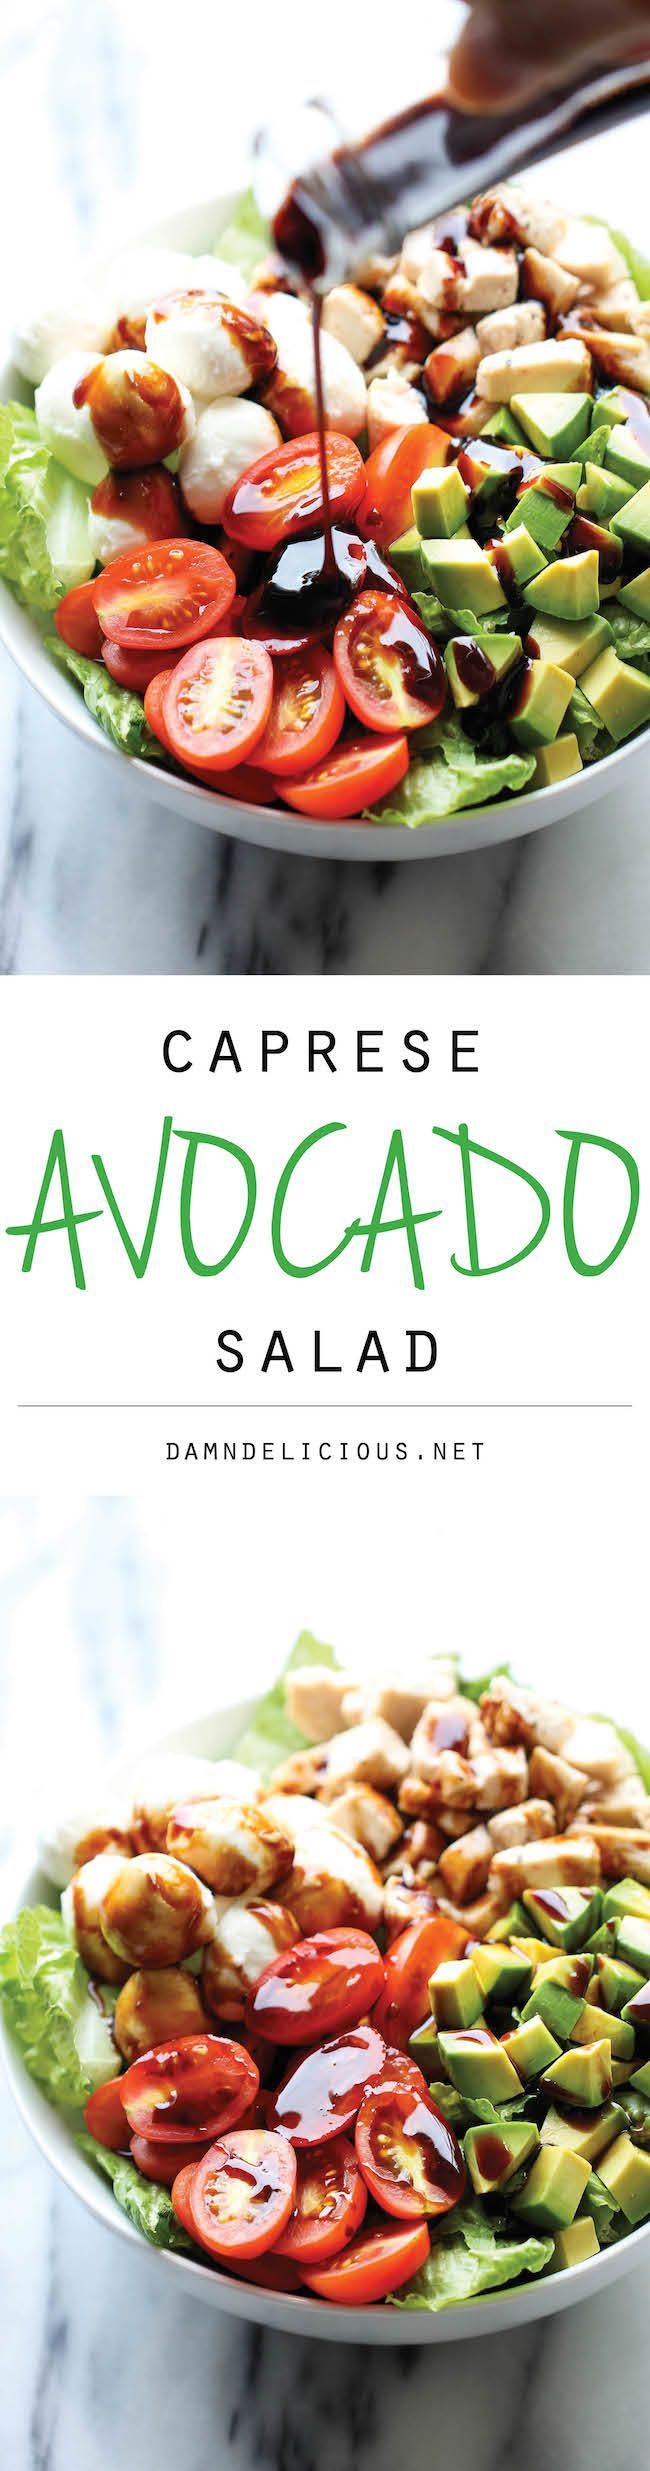 Caprese Avocado Salad @damndelicious *without the chicken*